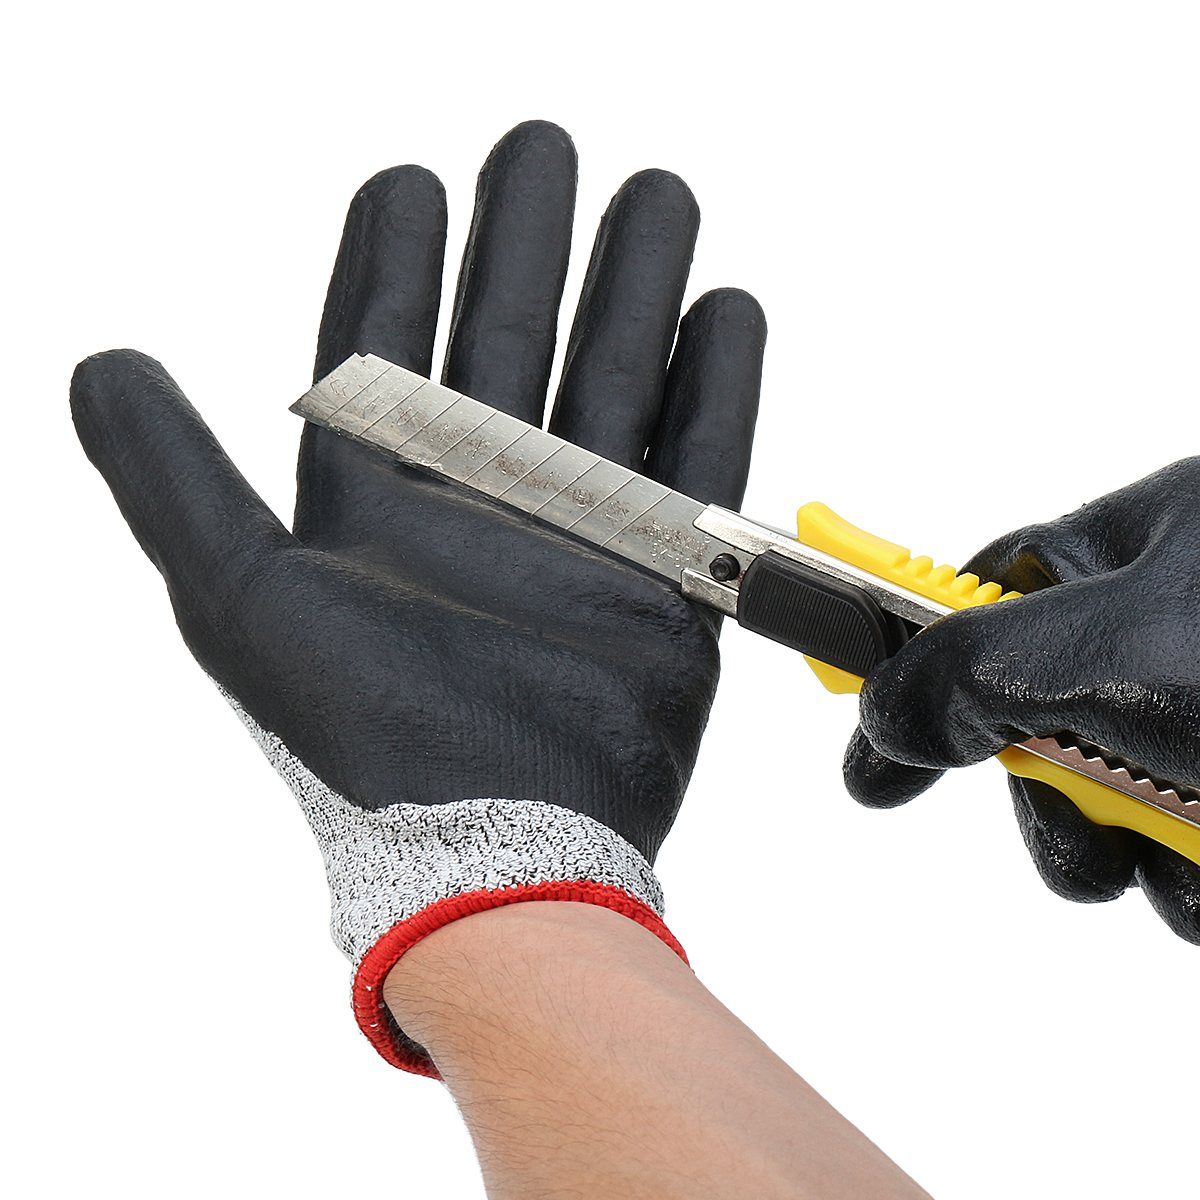 NEW Safurance Safety Cut Proof Stab Resistant Metal Mesh Butcher Gloves Workplace Safety Self Protection теннисный стол start line compact light lx